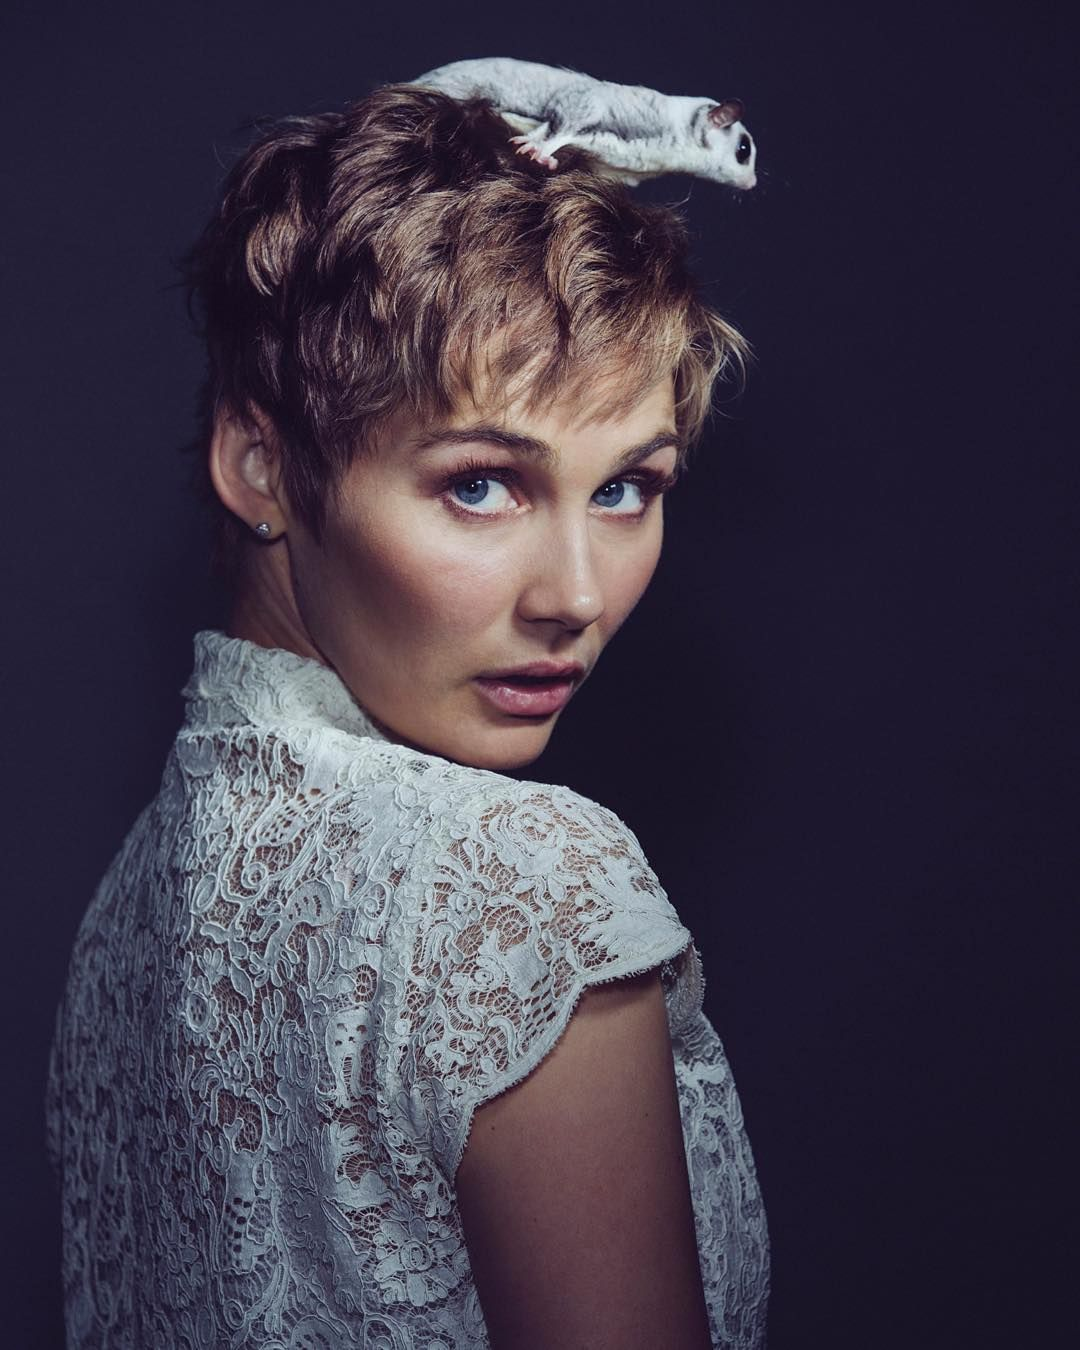 Photo Session #12 - 12 - Clare Bowen Web Photo Gallery  Short